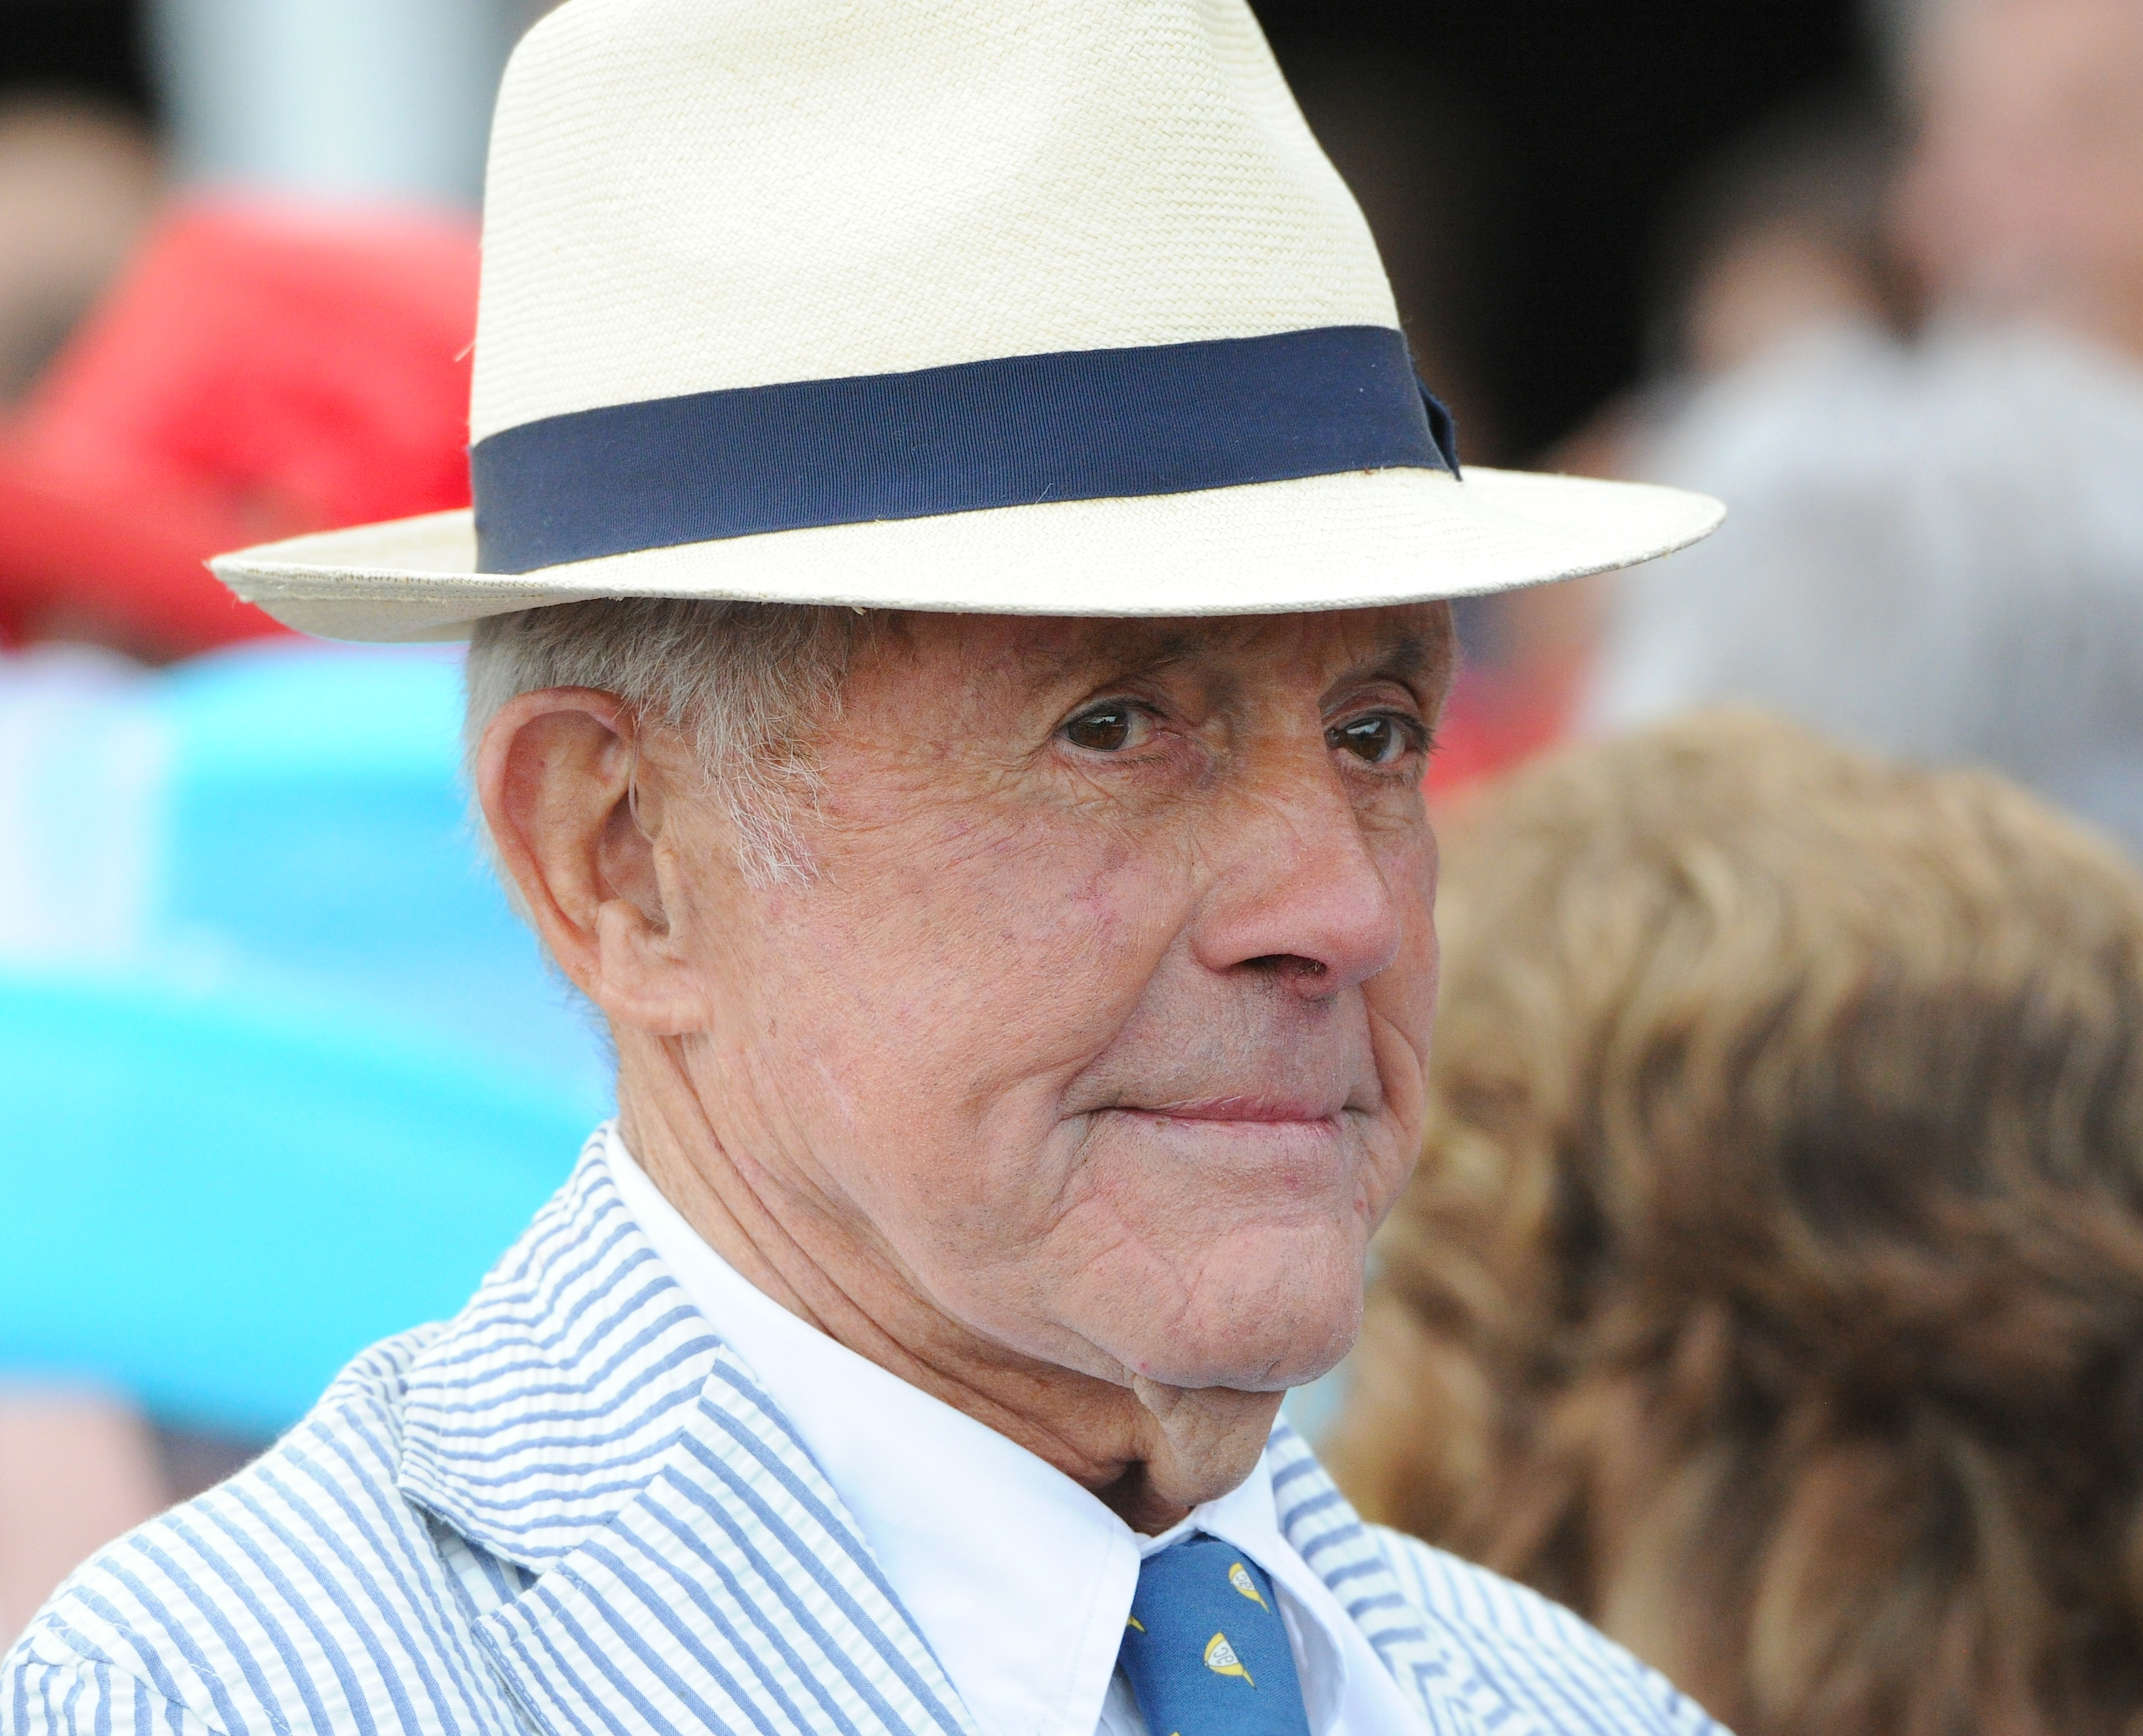 Cot Campbell on Jim Dandy Day at Saratoga, July 2013 (Bob Mayberger)